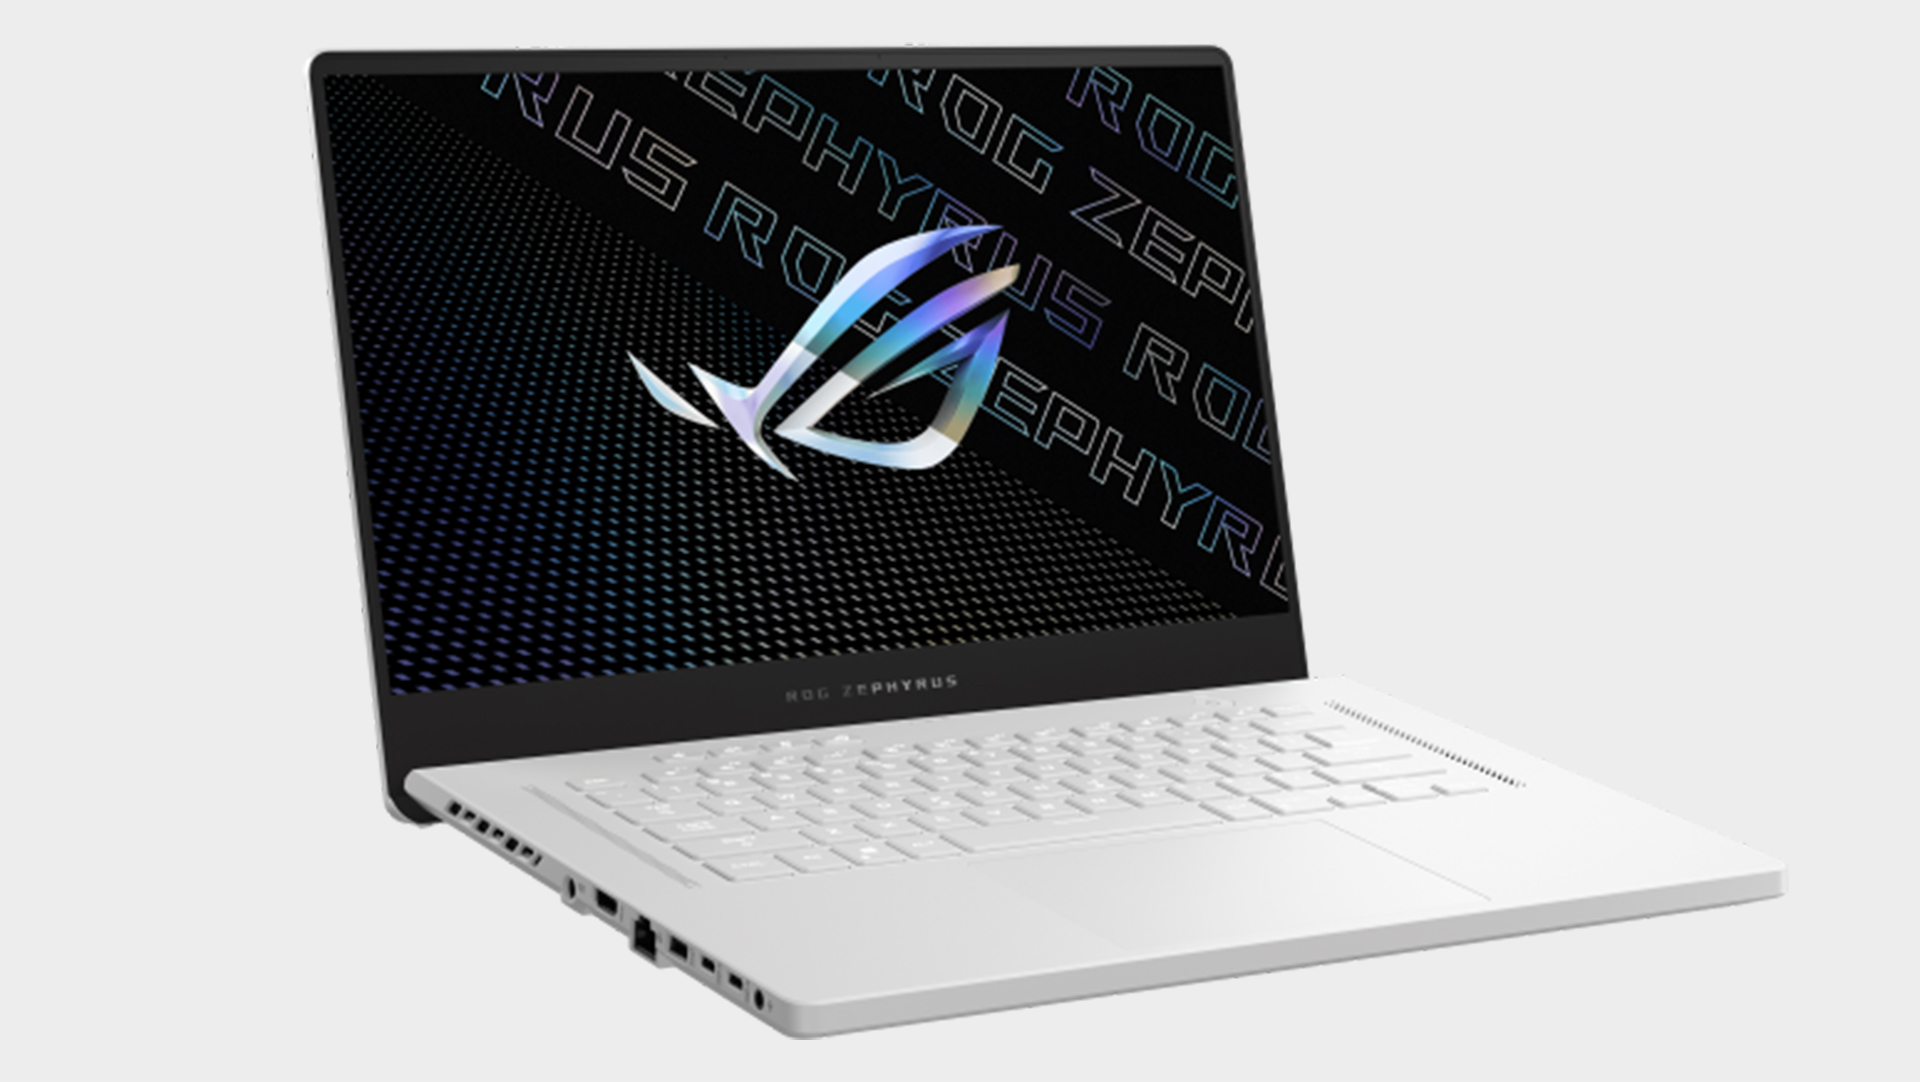 Asus ROG G15 gaming laptop from various angles on a grey background